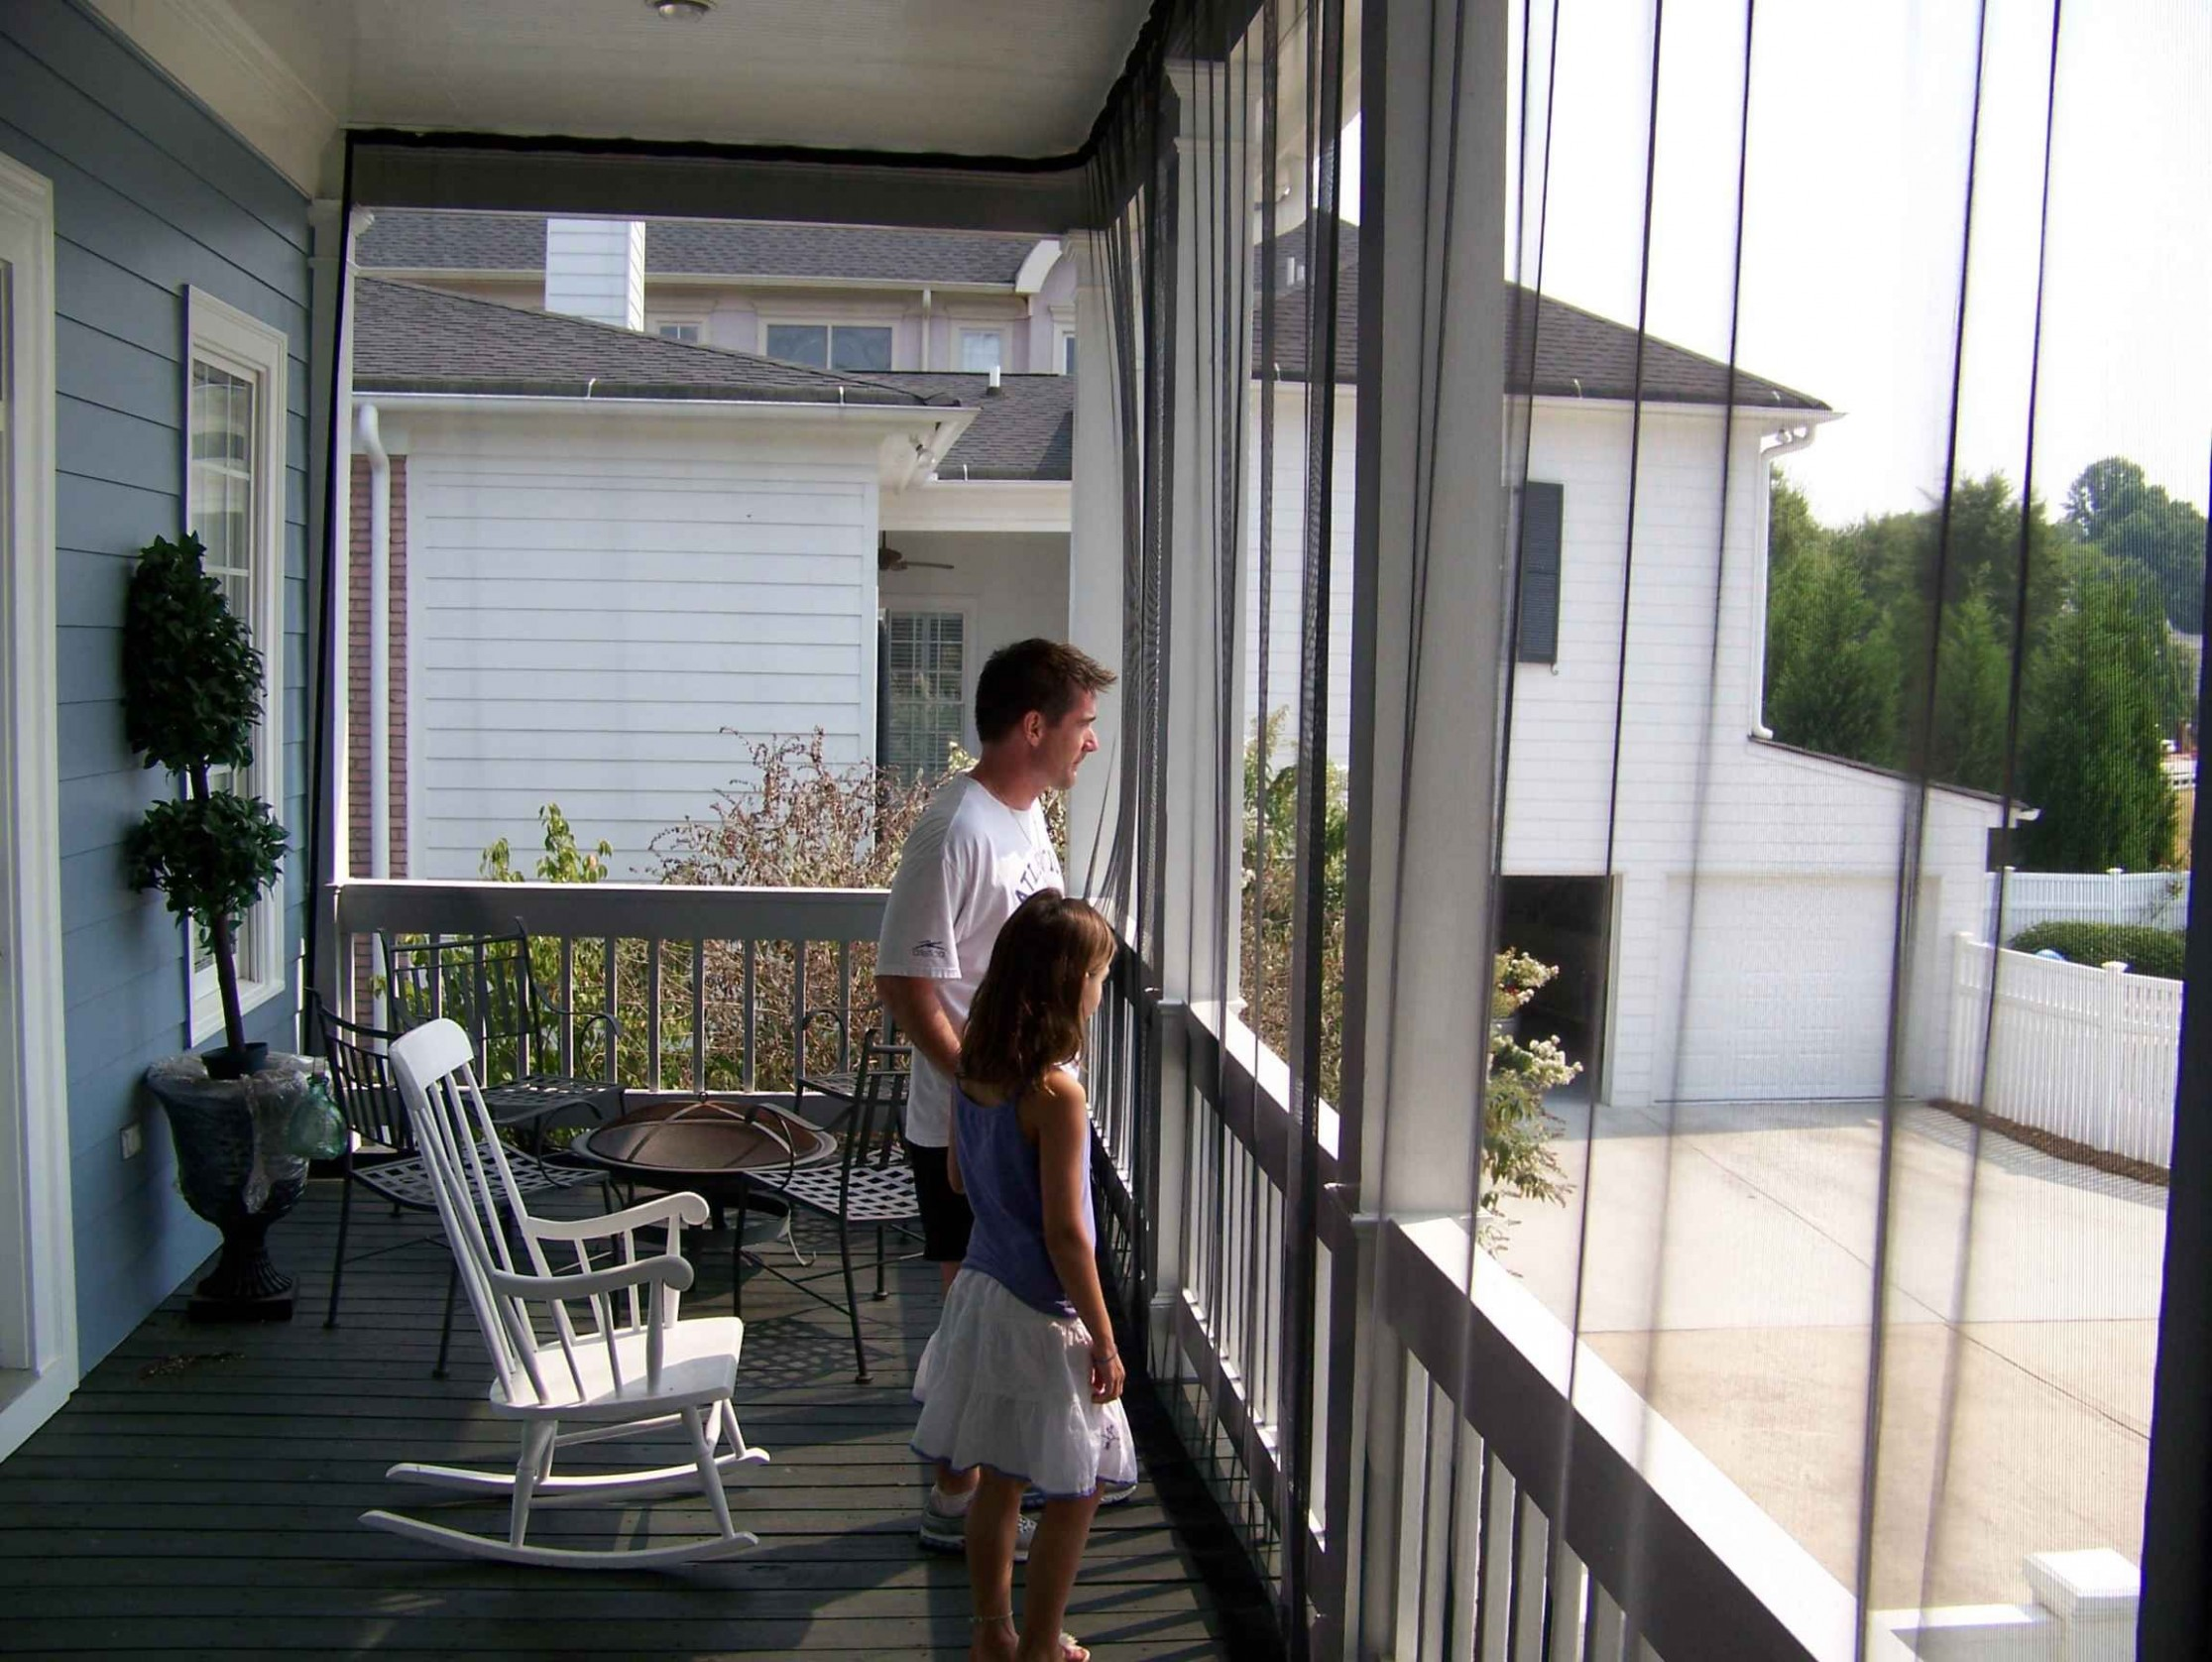 Mosquito Netting Mesh curtains for the balcony - WANT!  Mosquito  - Apartment Balcony Enclosure Ideas